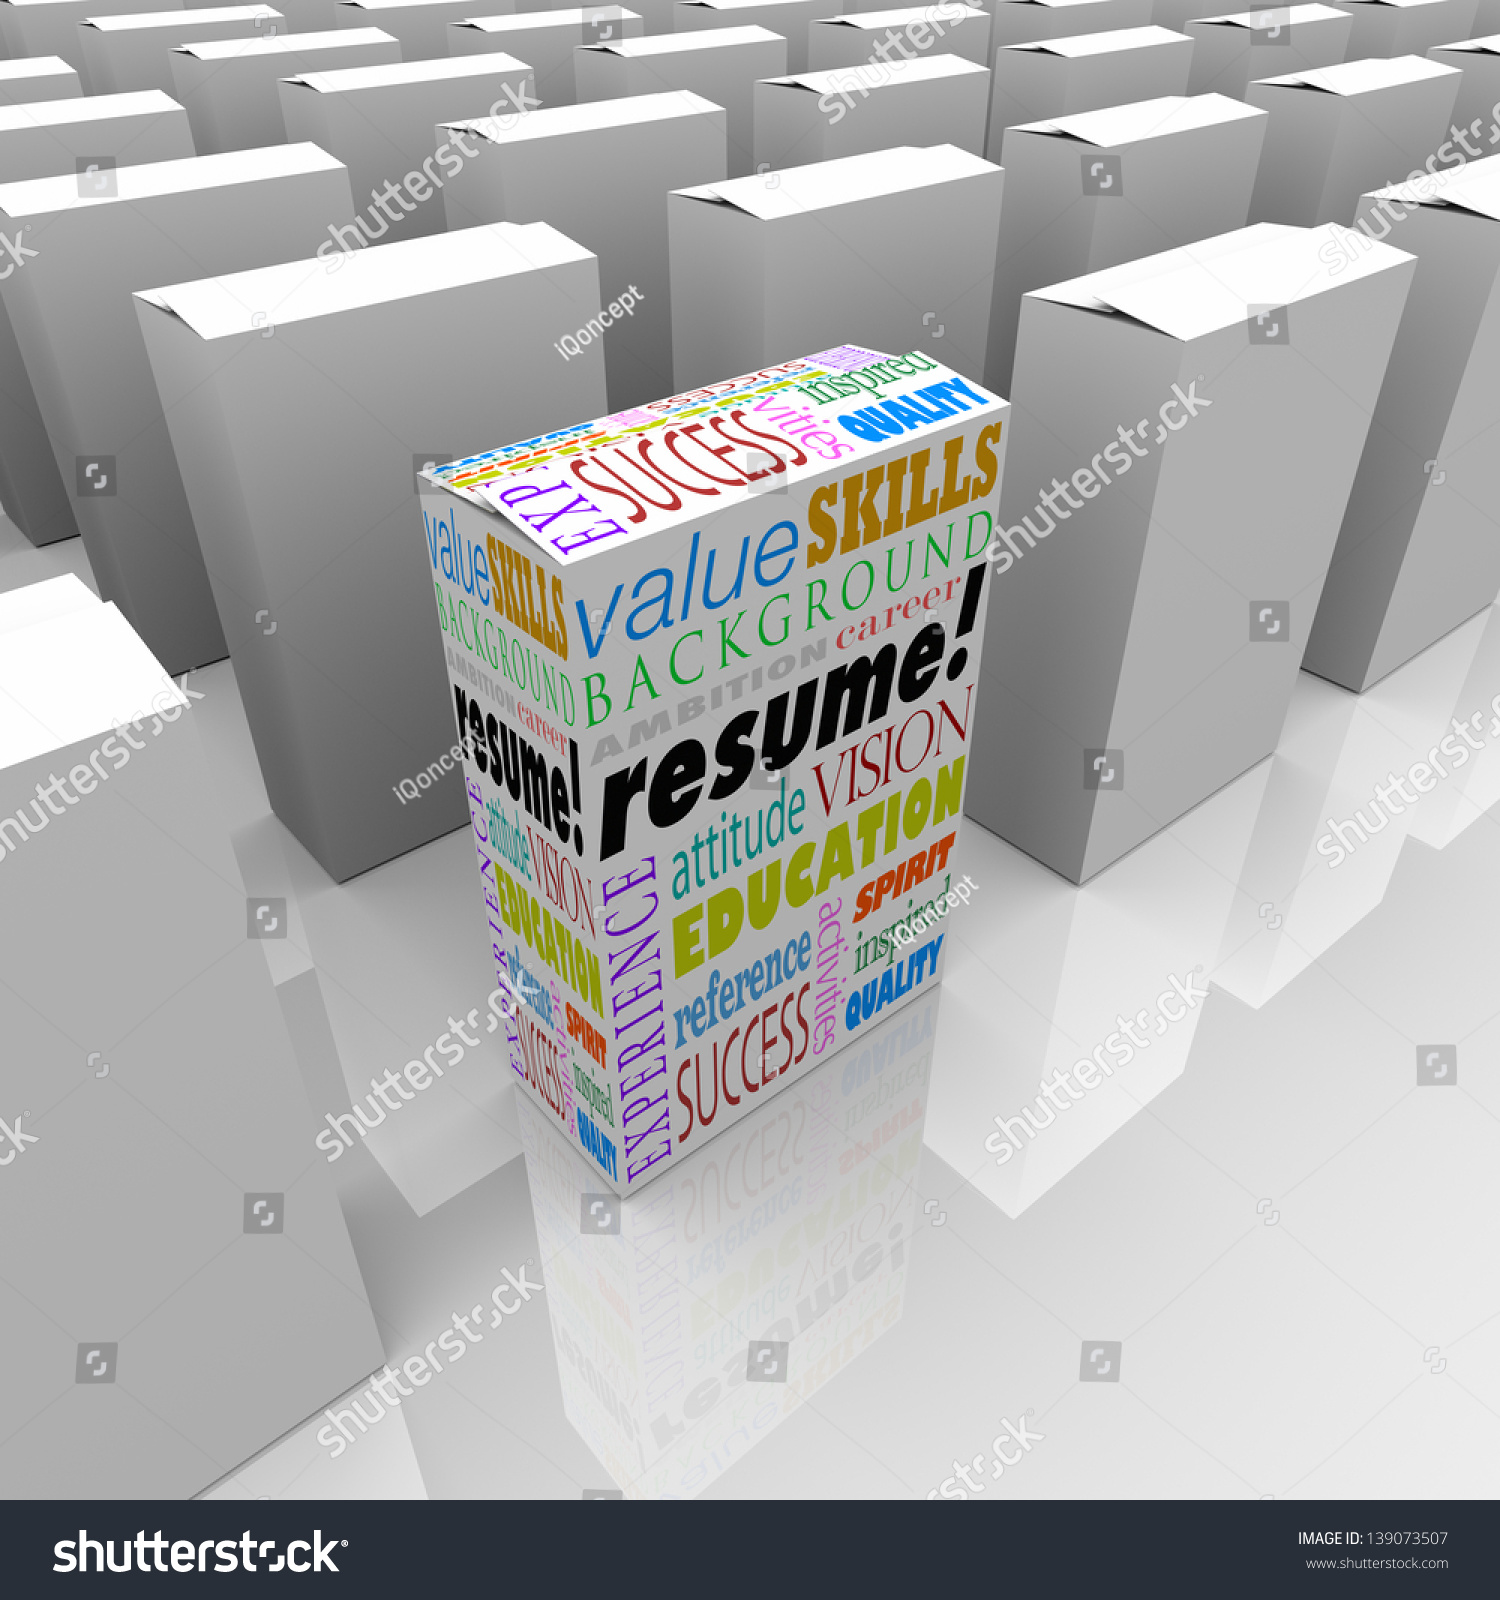 the word resume and job or interview related terms such as skills save to a lightbox